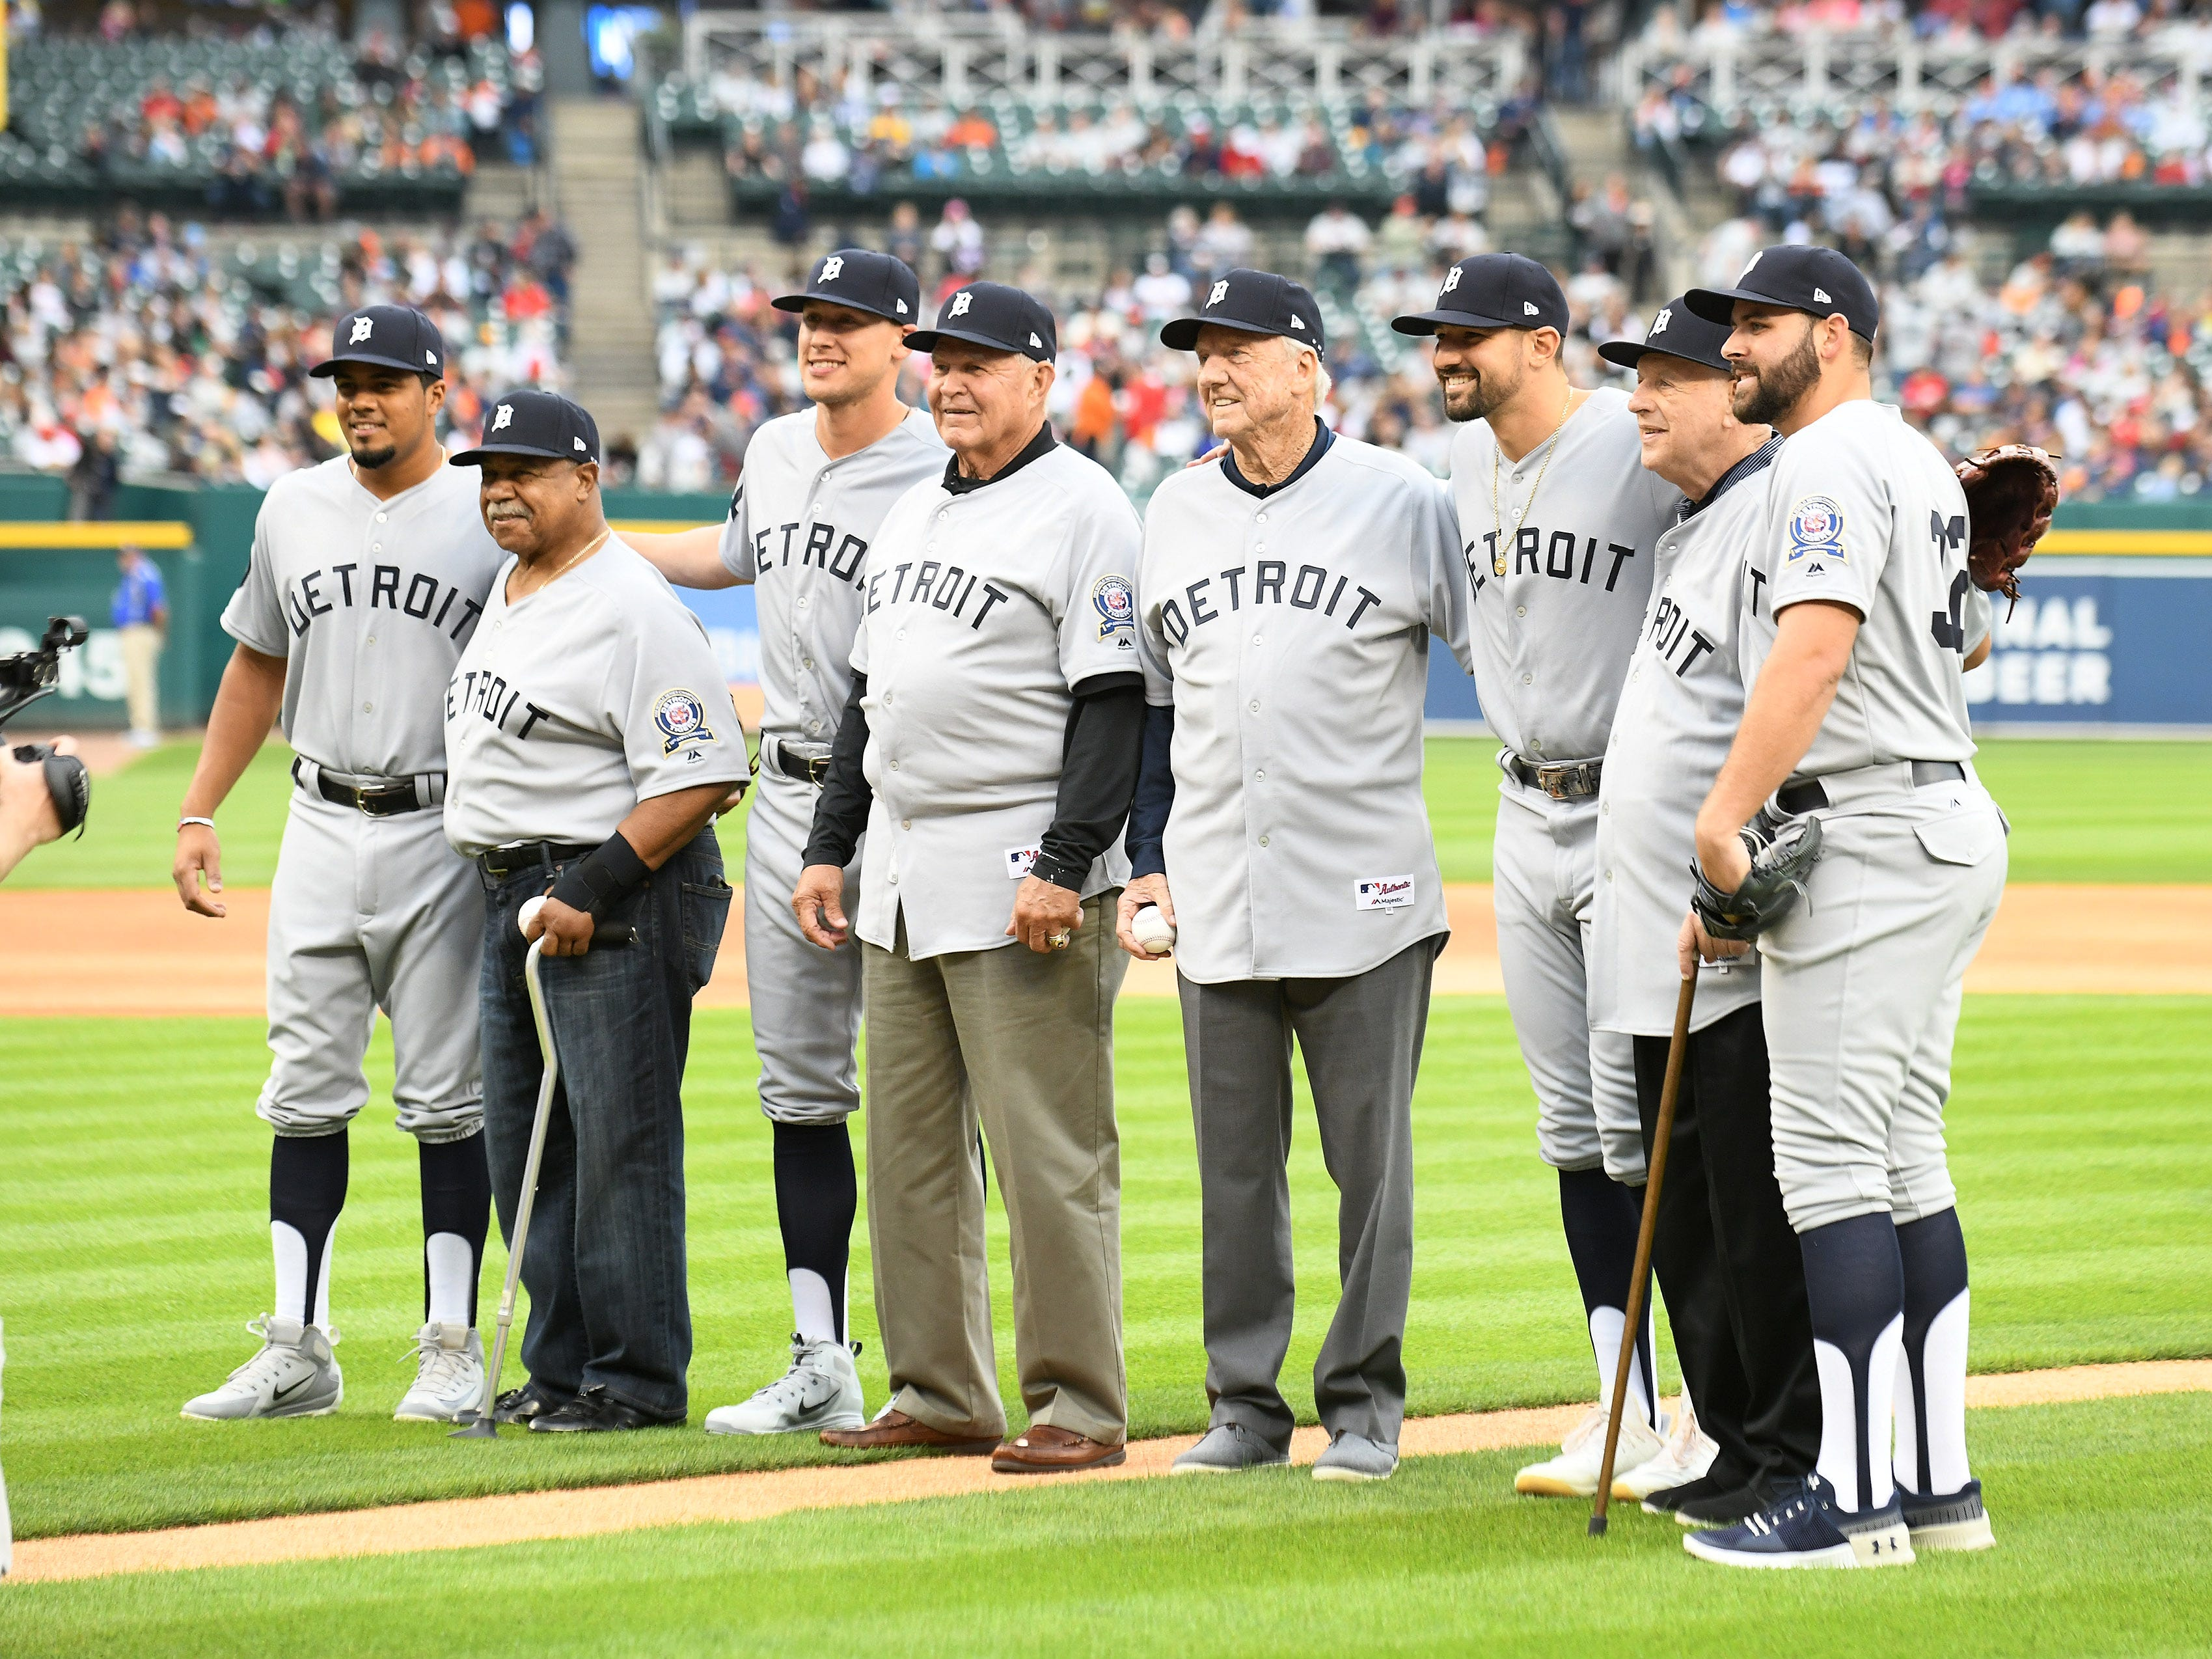 From left, Jeimer Candelario, Willie Horton, JaCoby Jones, Mickey Stanley, Al Kaline, Nicholas Castellanos, Mickey Lolich and Michael Fulmer after the ceremonial first pitch.